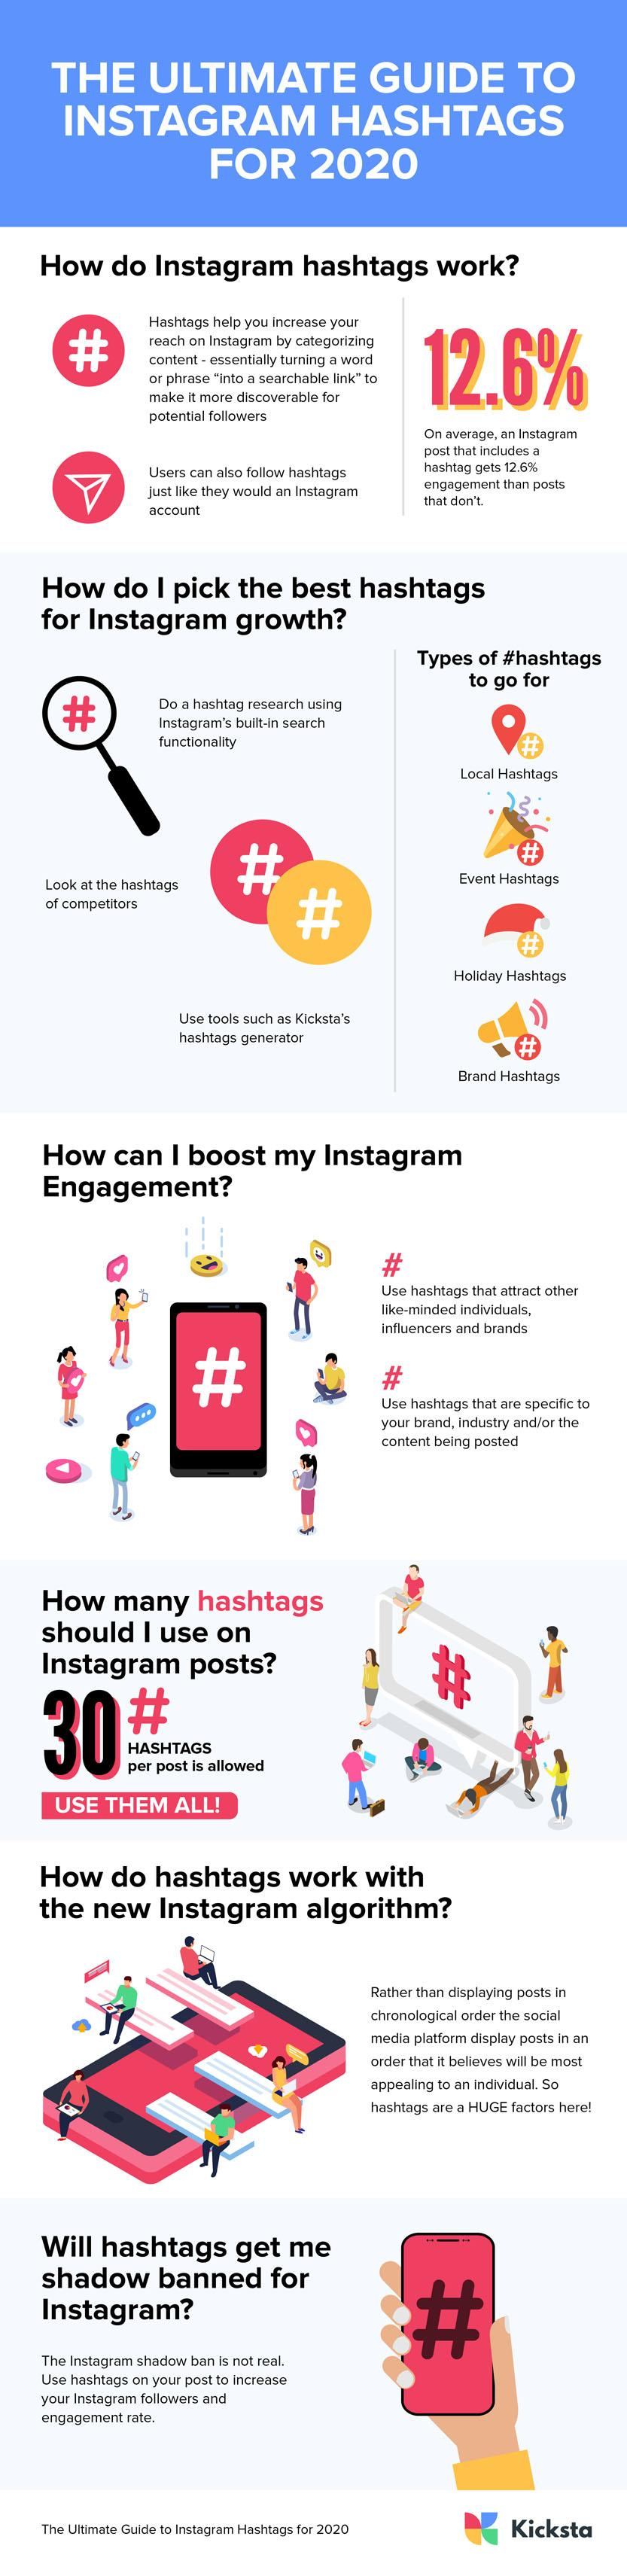 The Ultimate Guide To Instagram Hashtags For 2020